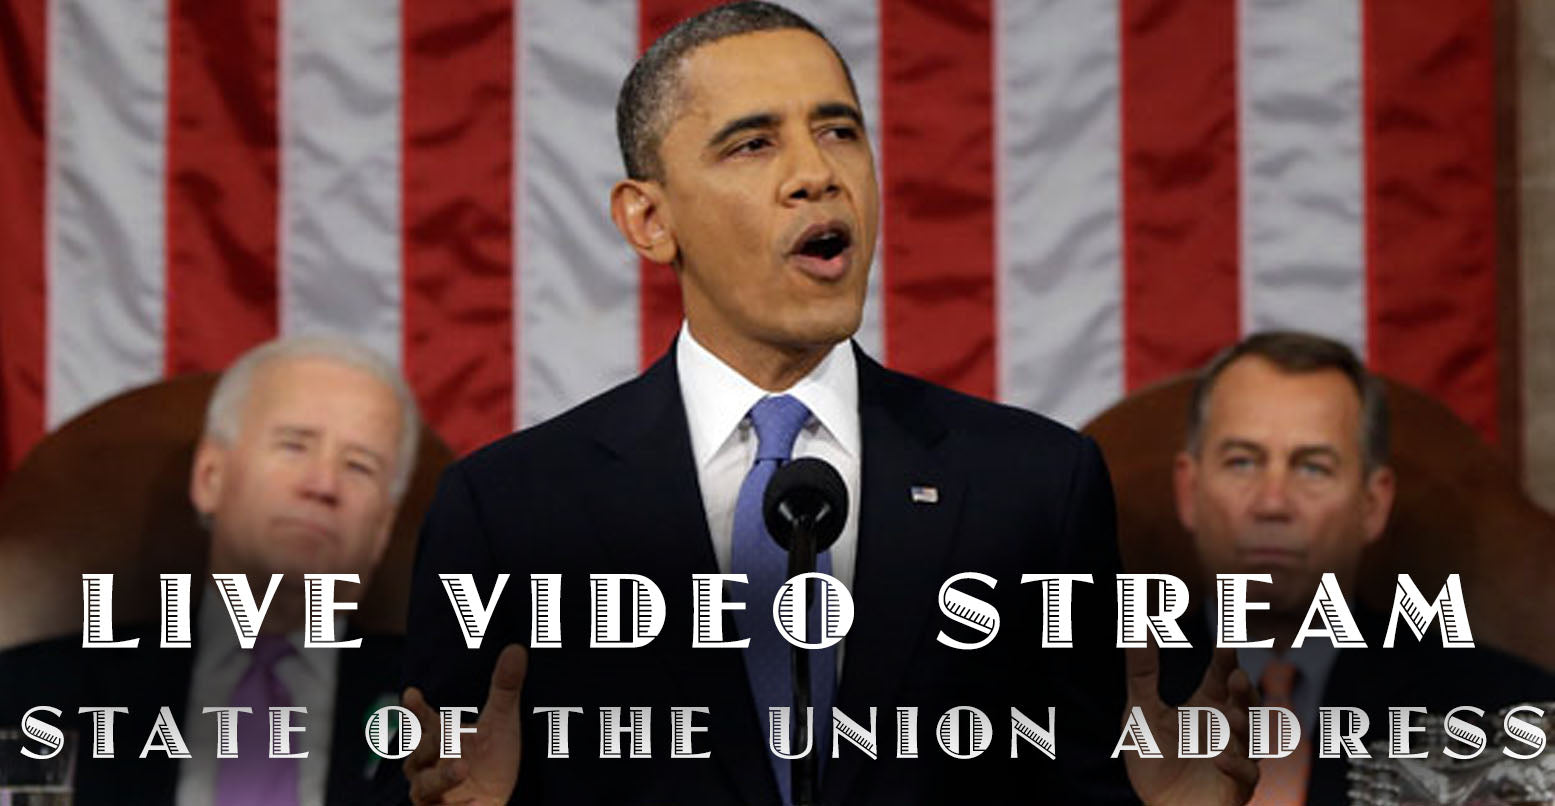 LIVE VIDEO: President Obama Delivers the State of the Union Address